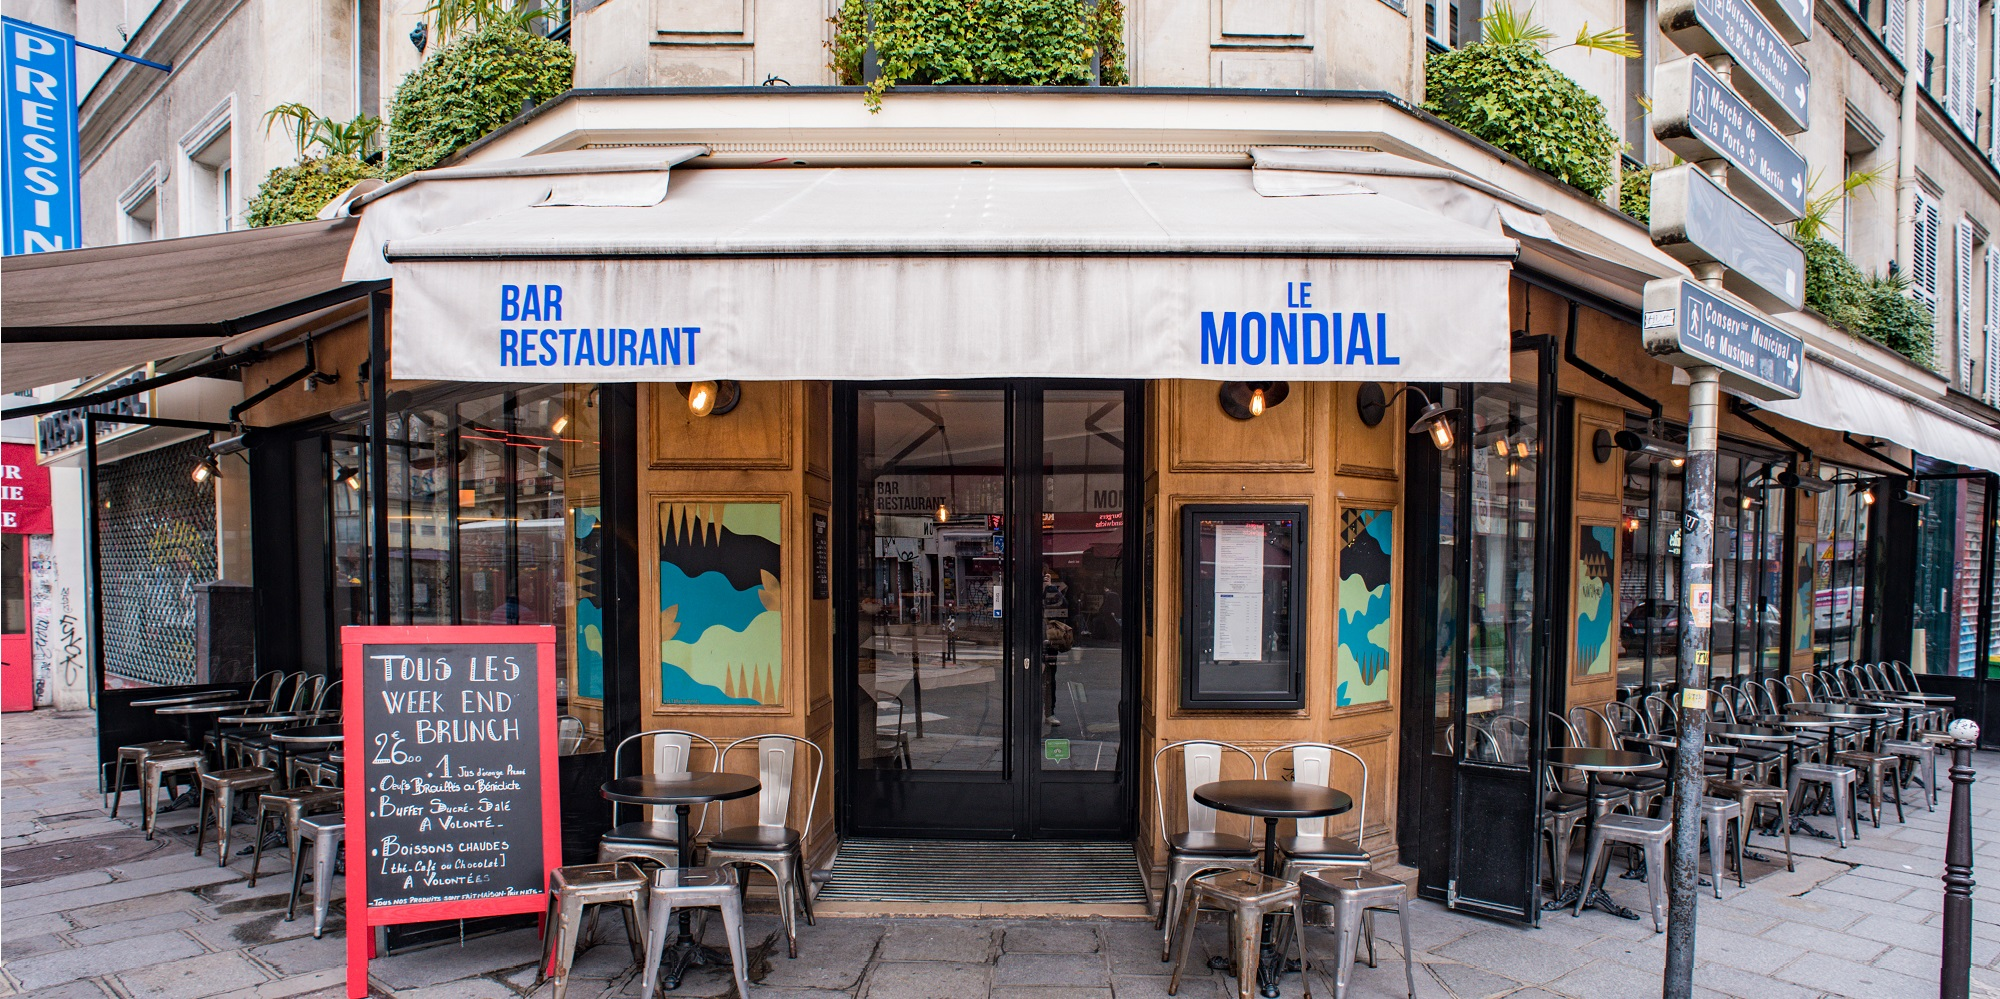 Brunch Le Mondial (75010 Paris)